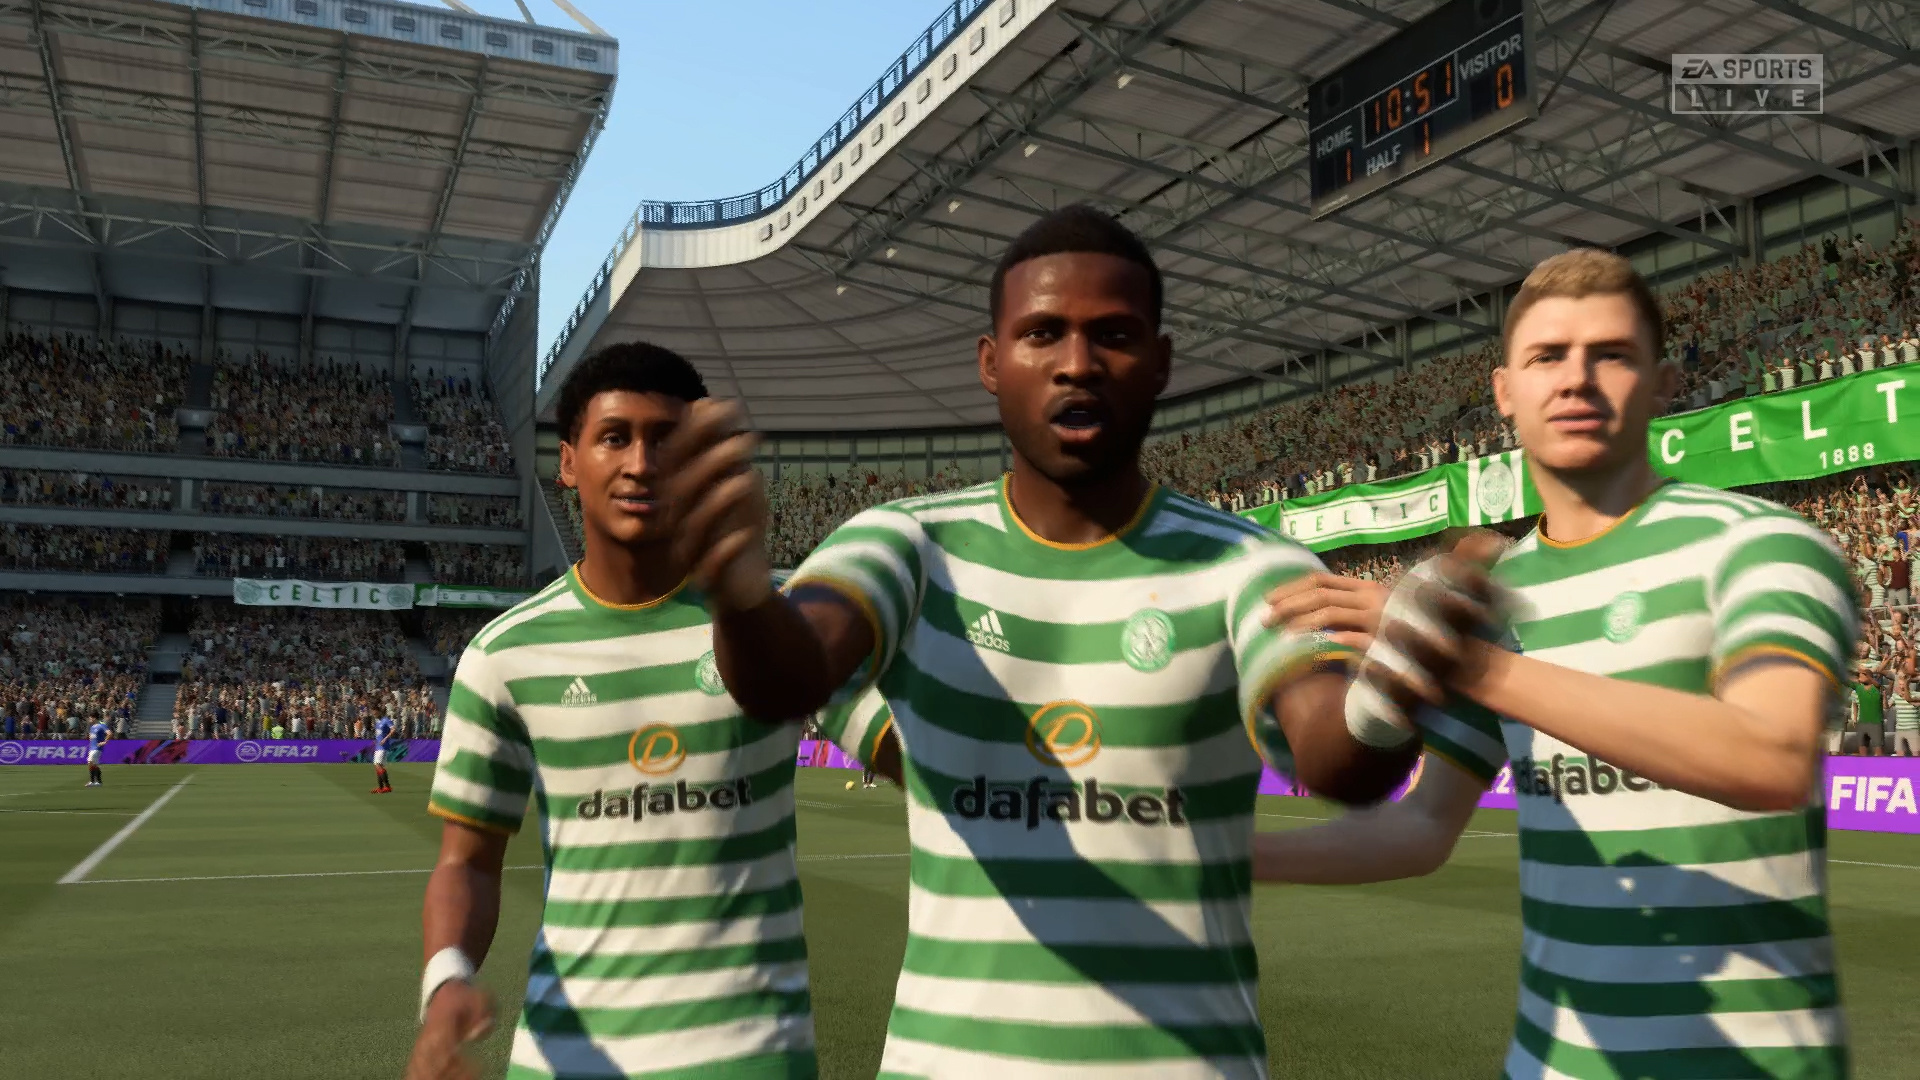 FIFA 21 review: what does digital football look like during pandemic?